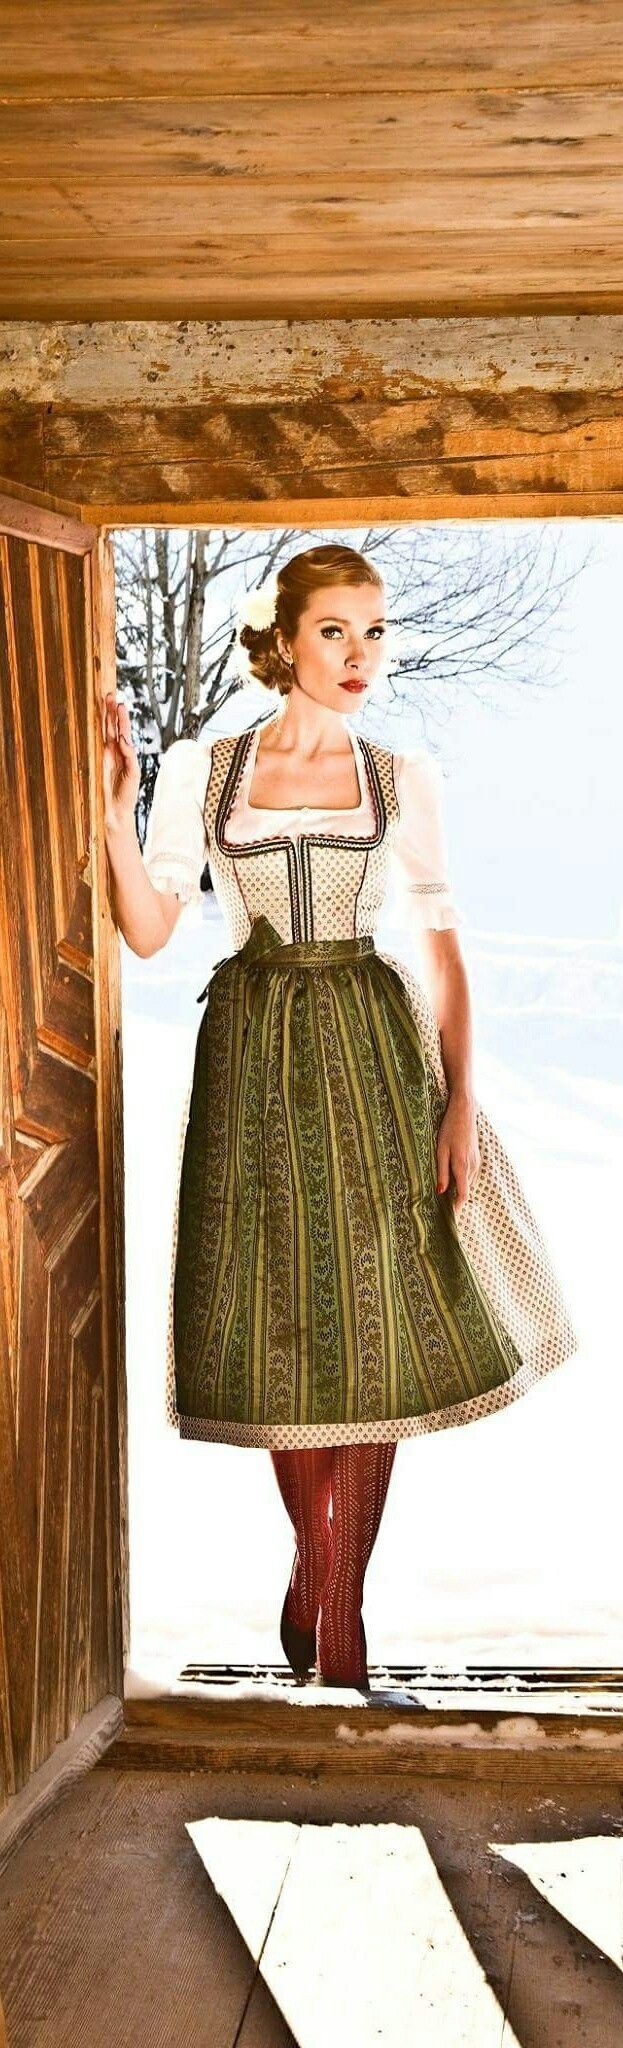 Landhausmode - Modern Dresses based on Dirndl (Traditional Alpine Peasant Clothing)